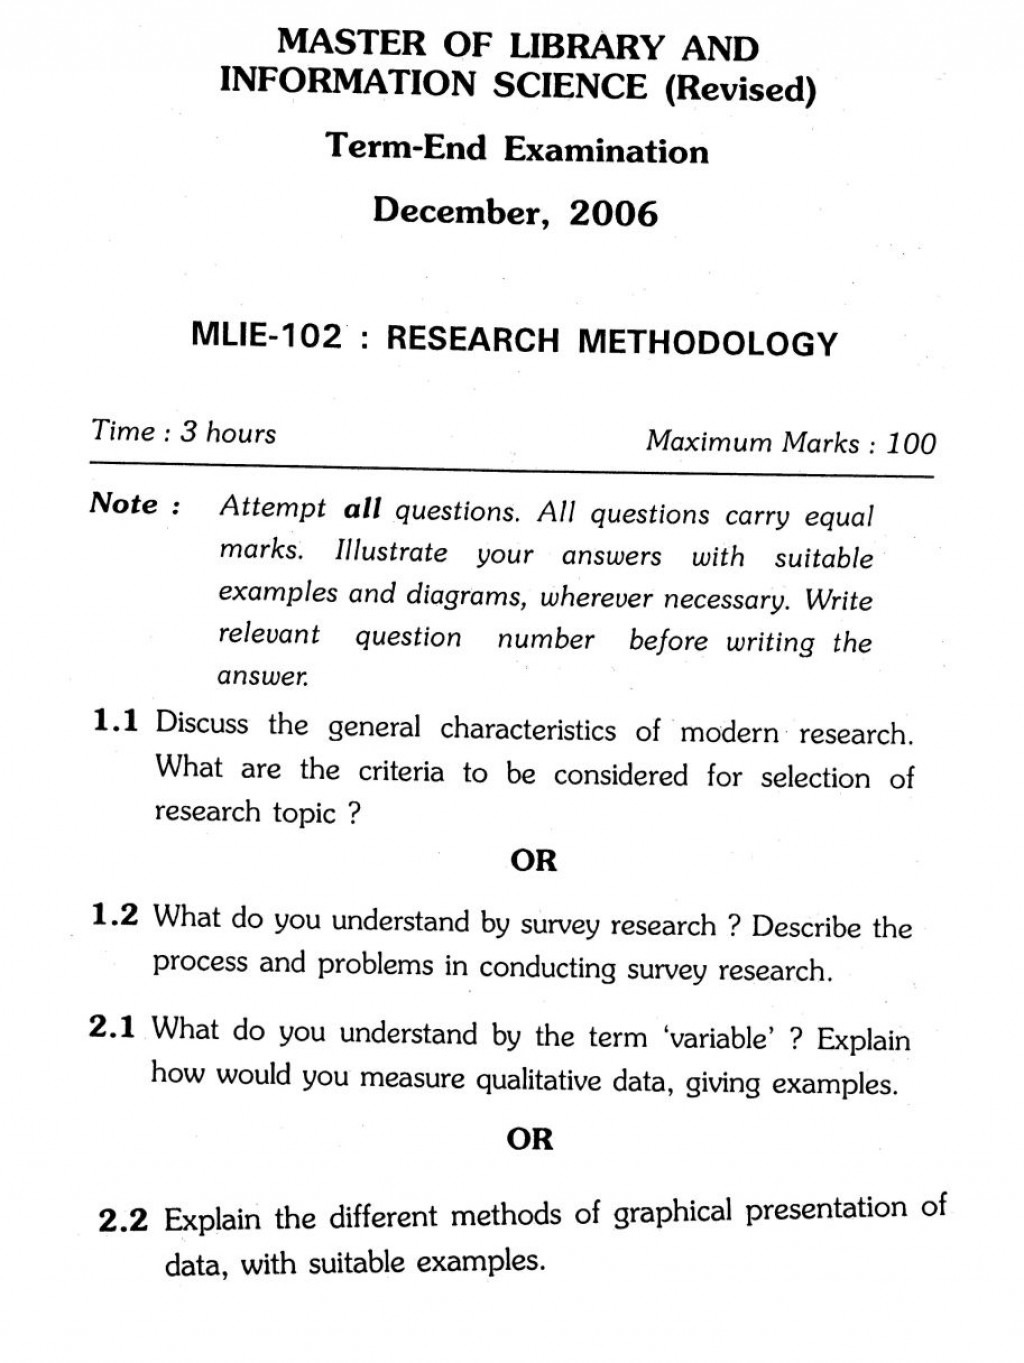 016 Ignou Master Of Library And Information Science Research Methodology Previous Years Questions Sample For Impressive Paper Writing Pdf Large